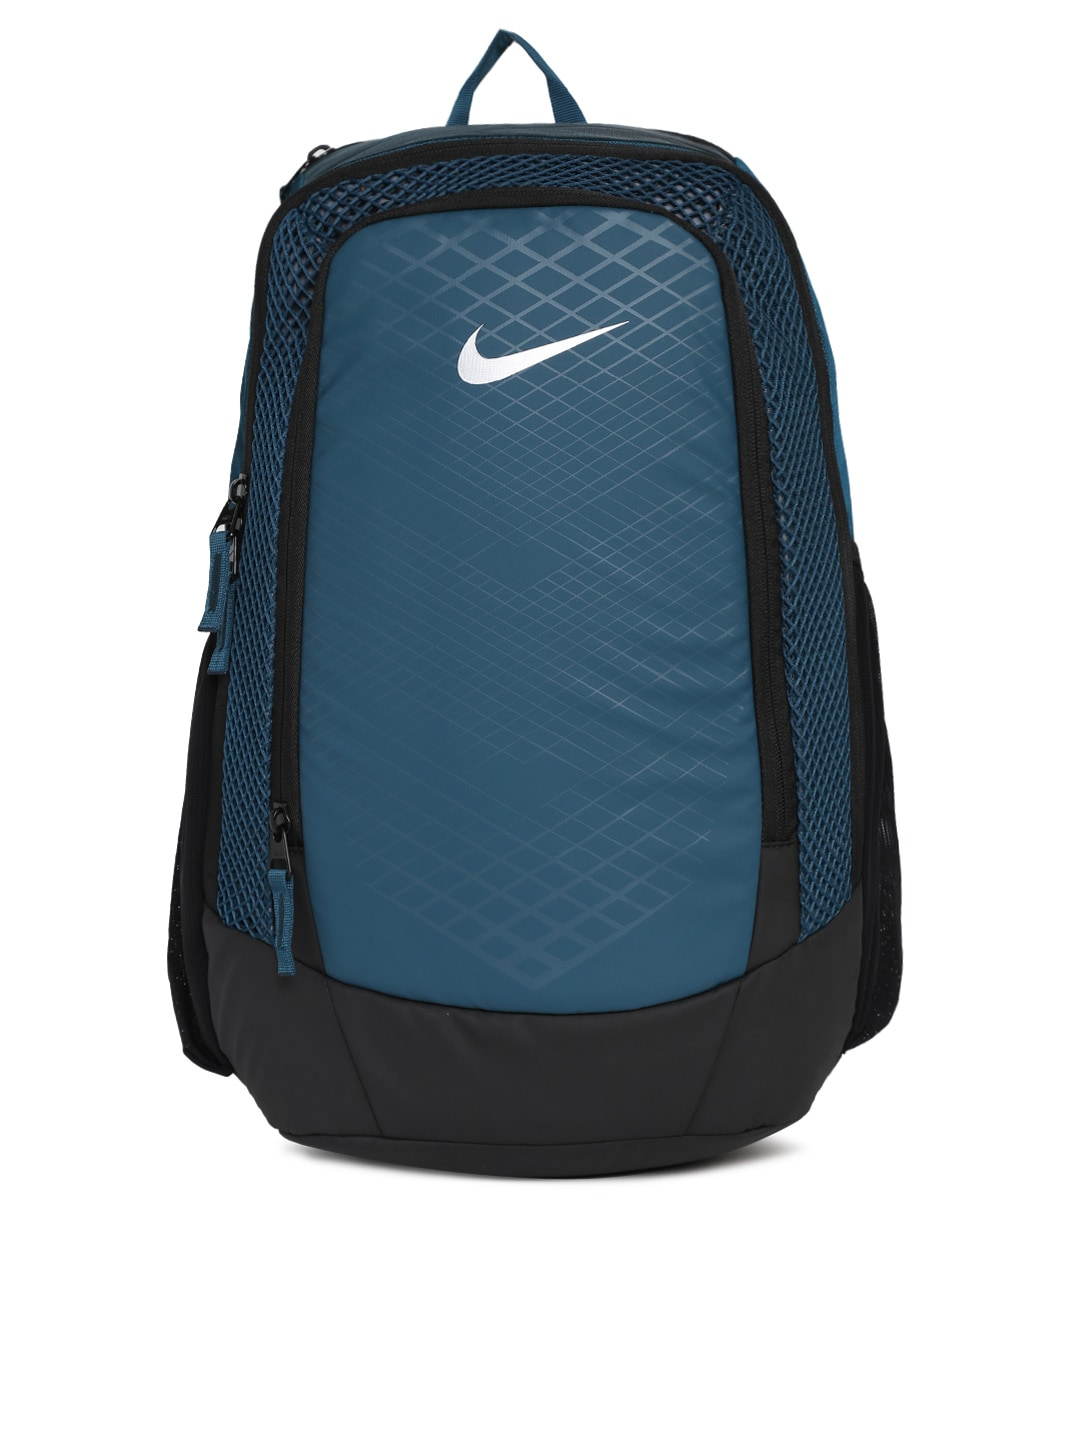 Buy Nike Teal Blue VPR SPEED Men Backpack At Best Price